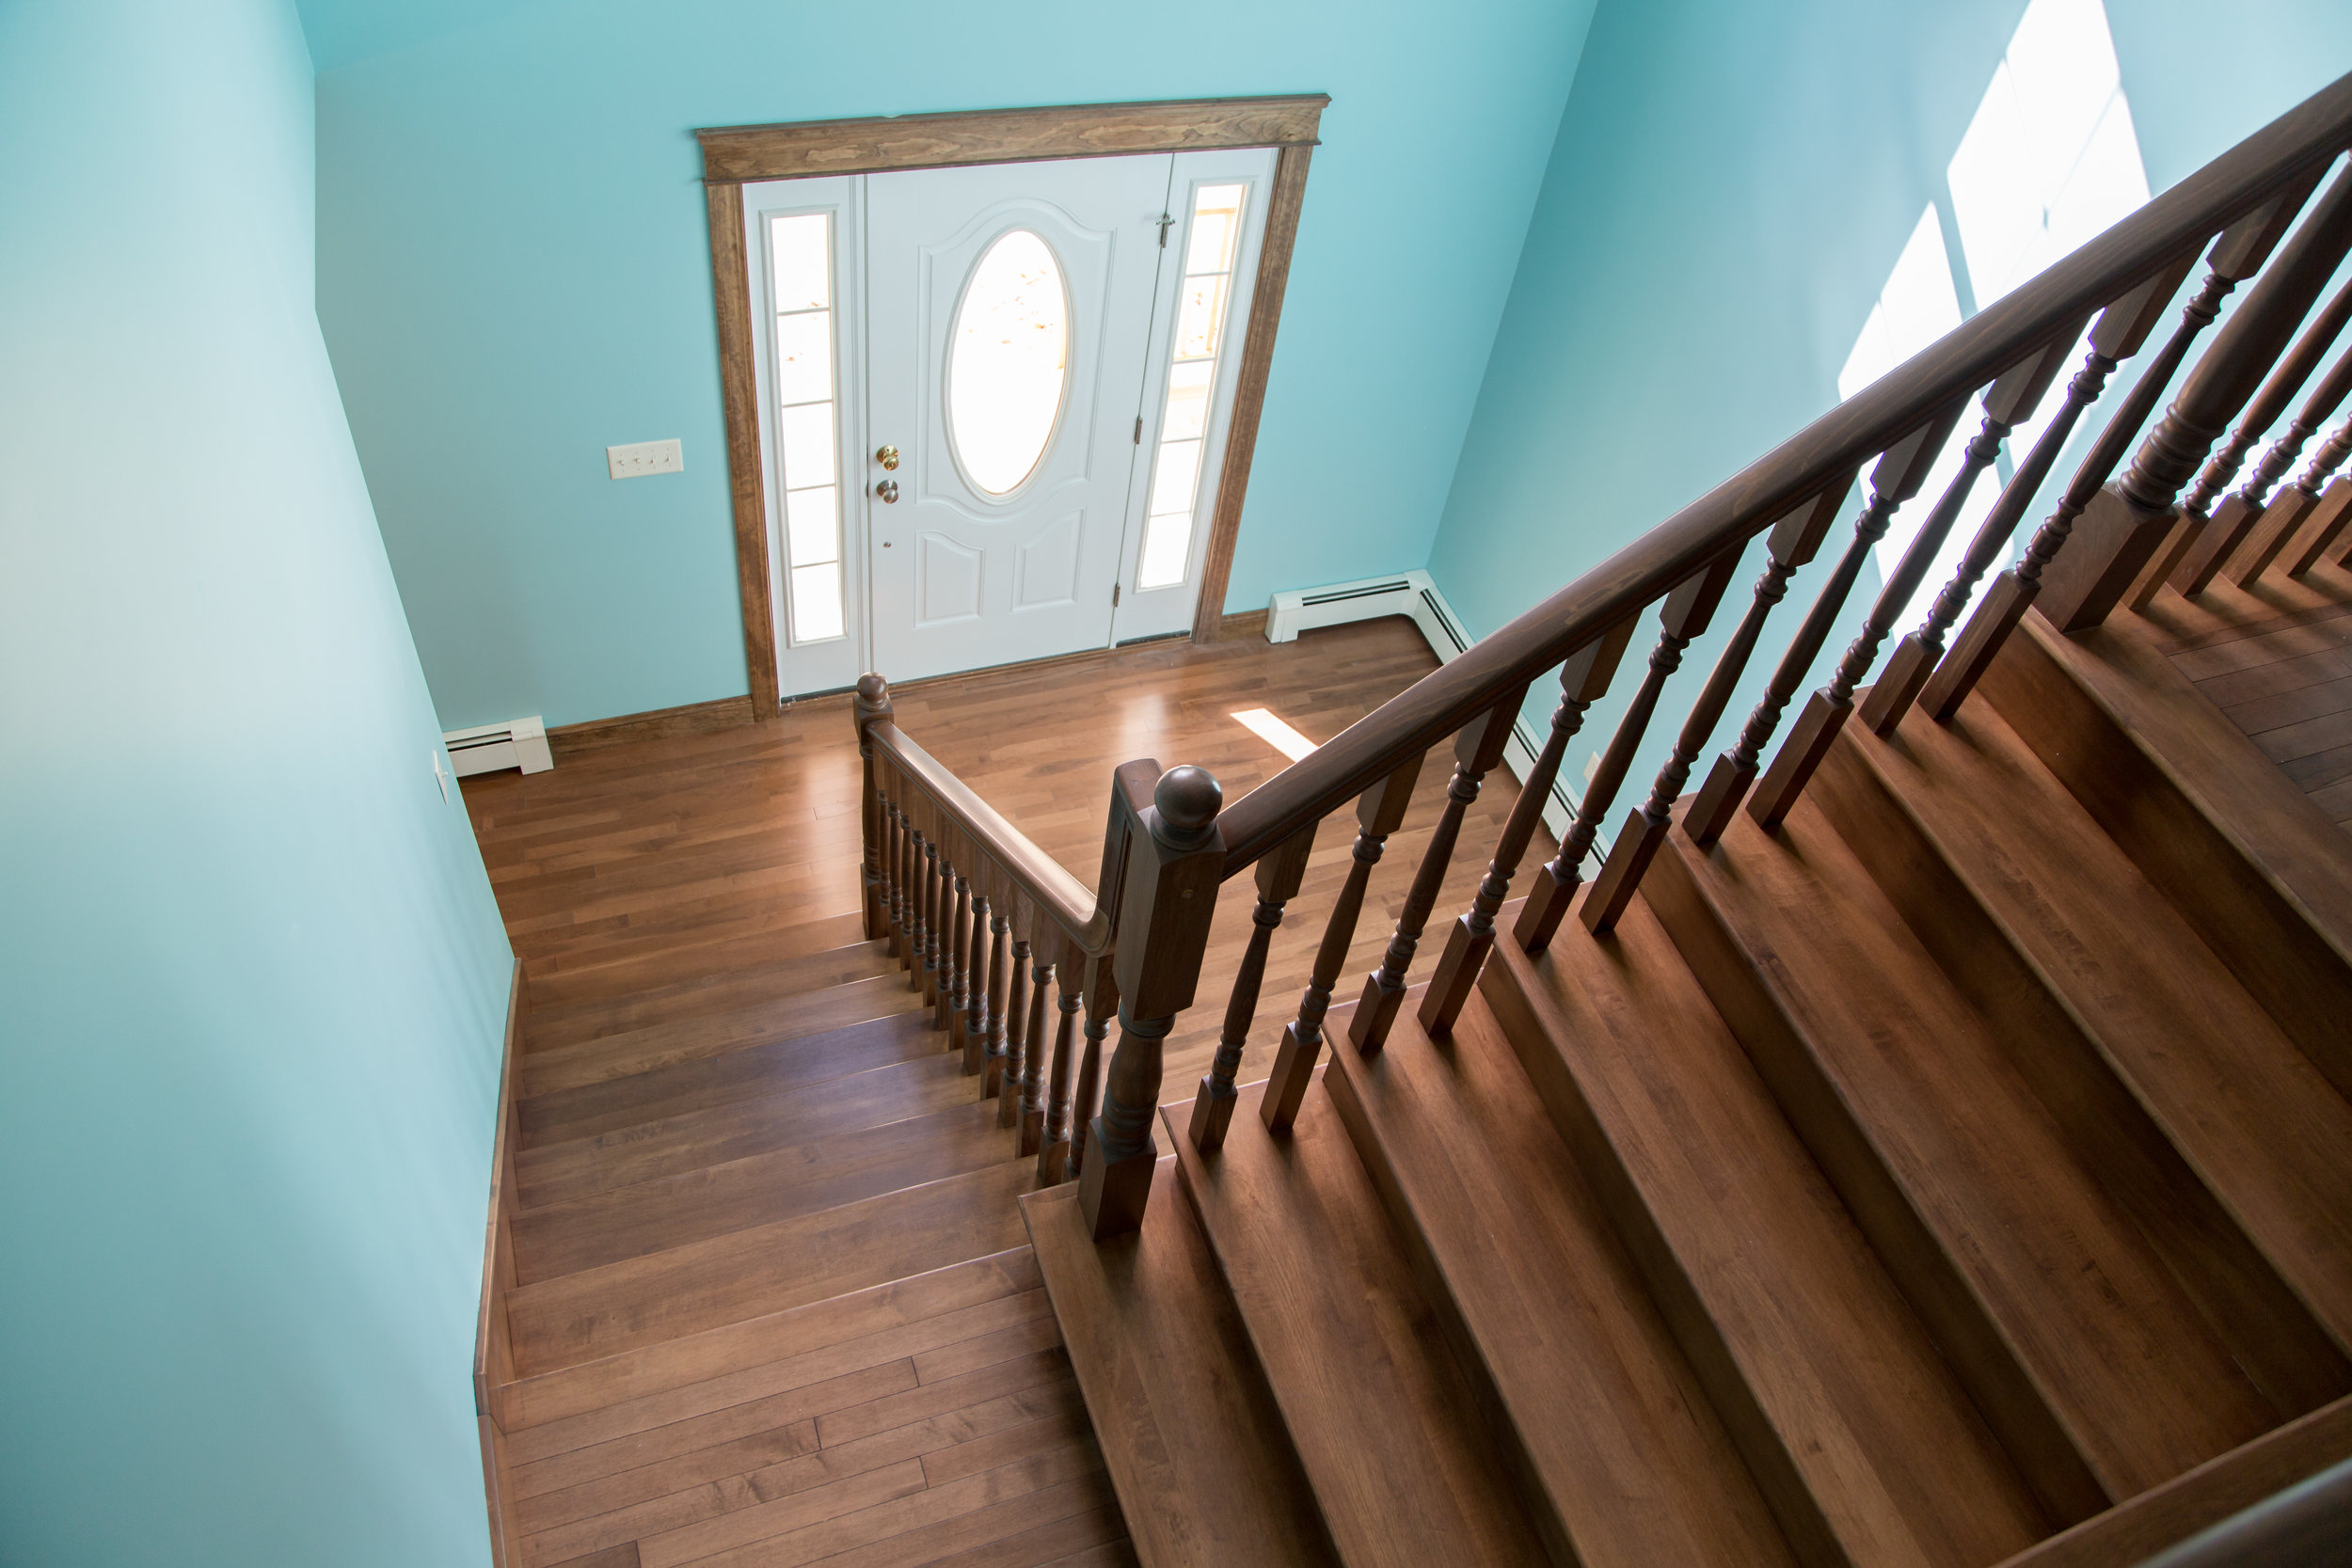 Hardwood Vs Carpet Stairs: Which Is Best For You?